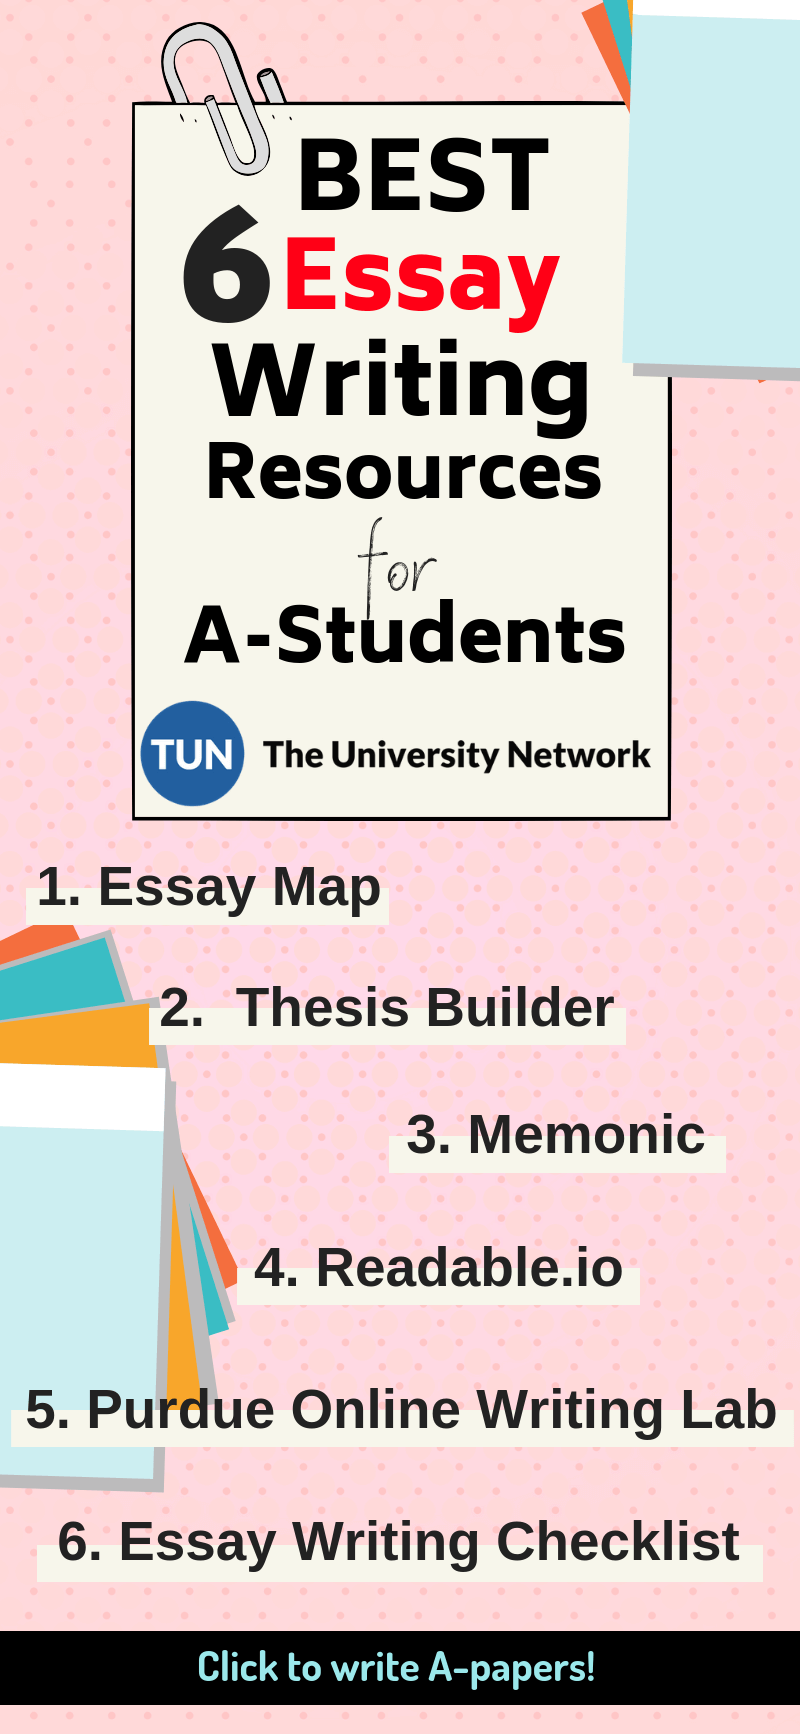 Paraphrase Helper  Best Essay Writing Resources For Astudents  The University Network Website Writing Services also High School Scholarship Essay Examples  Best Essay Writing Resources For Astudents  Asu College  Nova Business Plan Writer